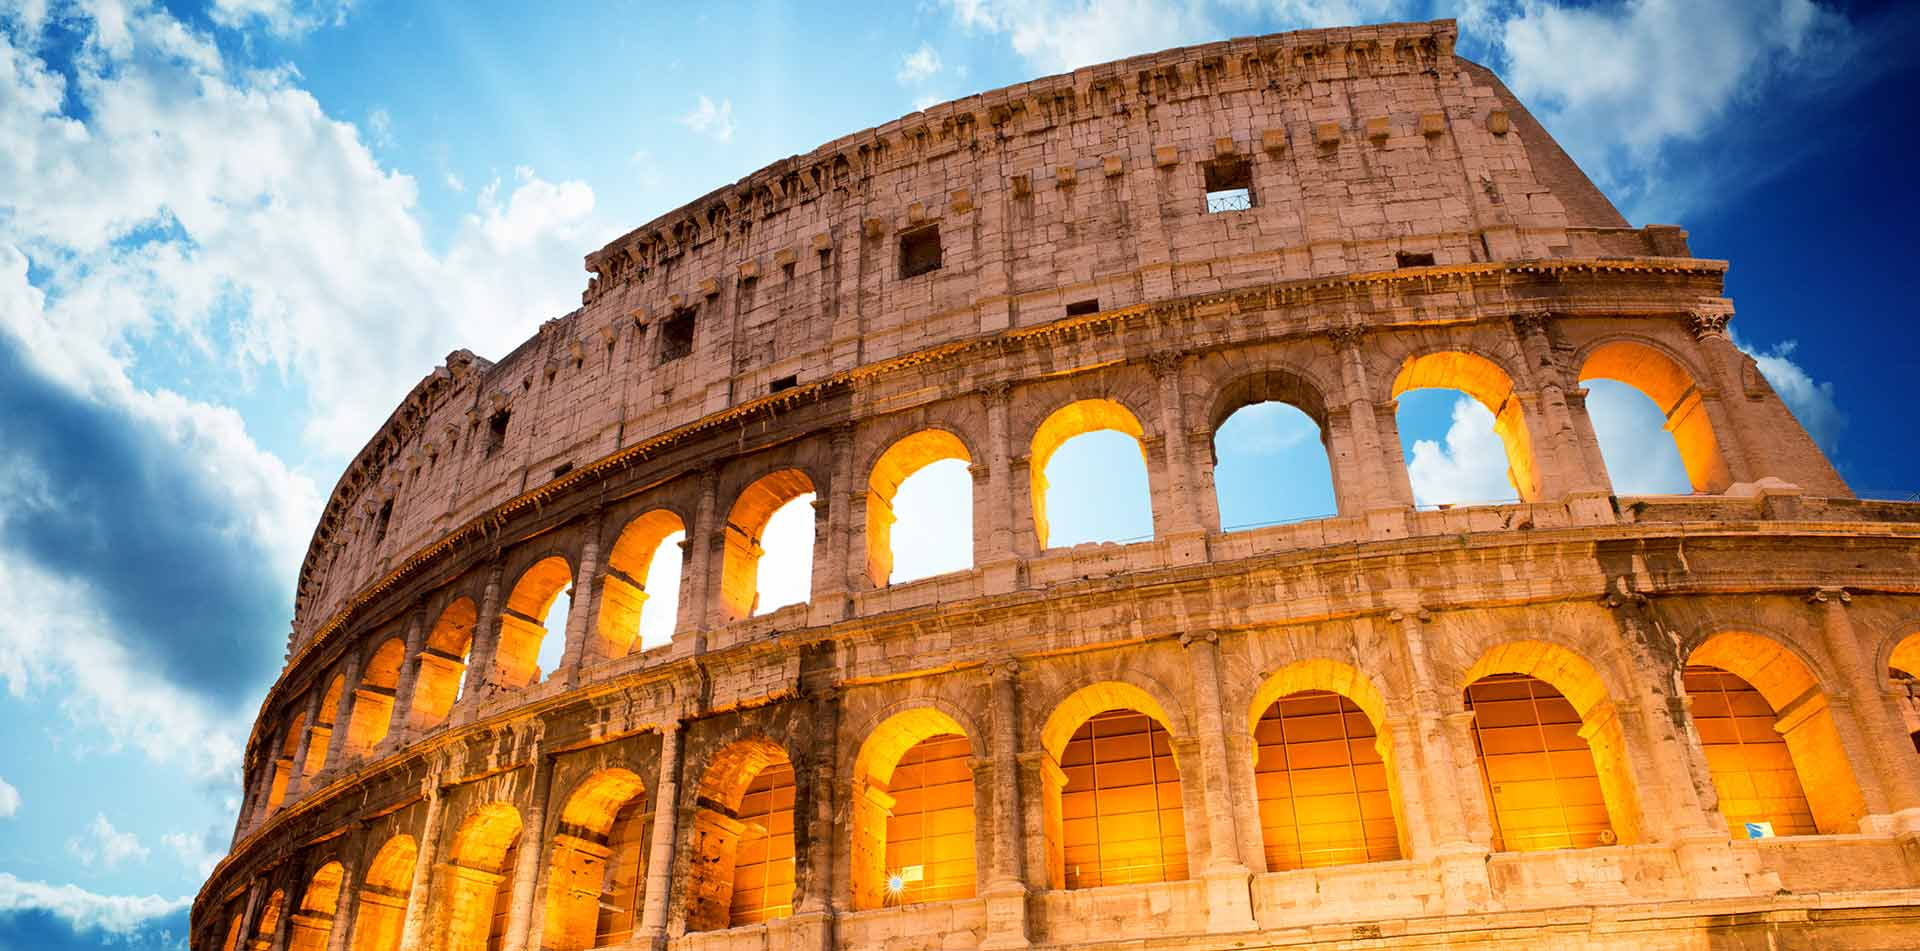 Europe Italy Rome ancient Colosseum oval amphitheatre bright sunlight - luxury vacation destinations